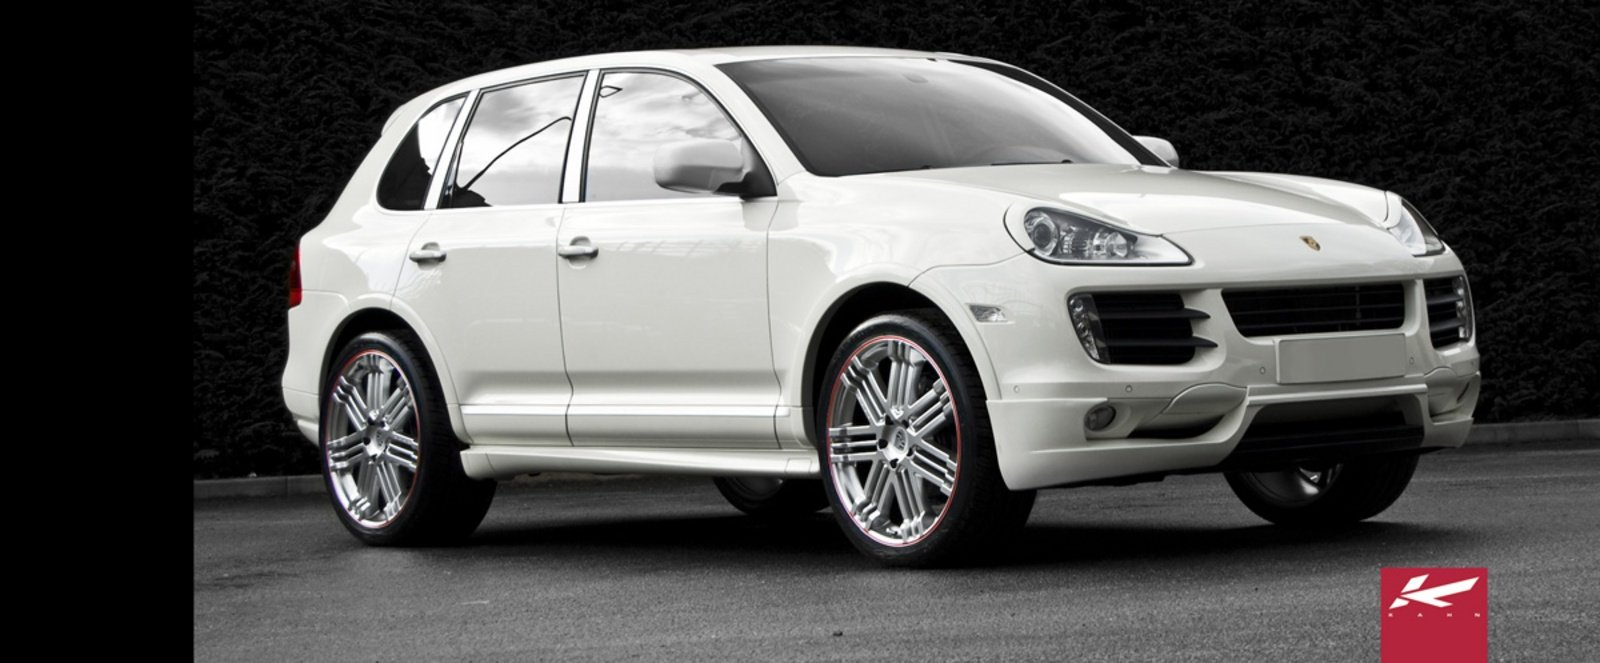 Porsche cayenne super sport tiptronic by kahn news - Super sayenne ...